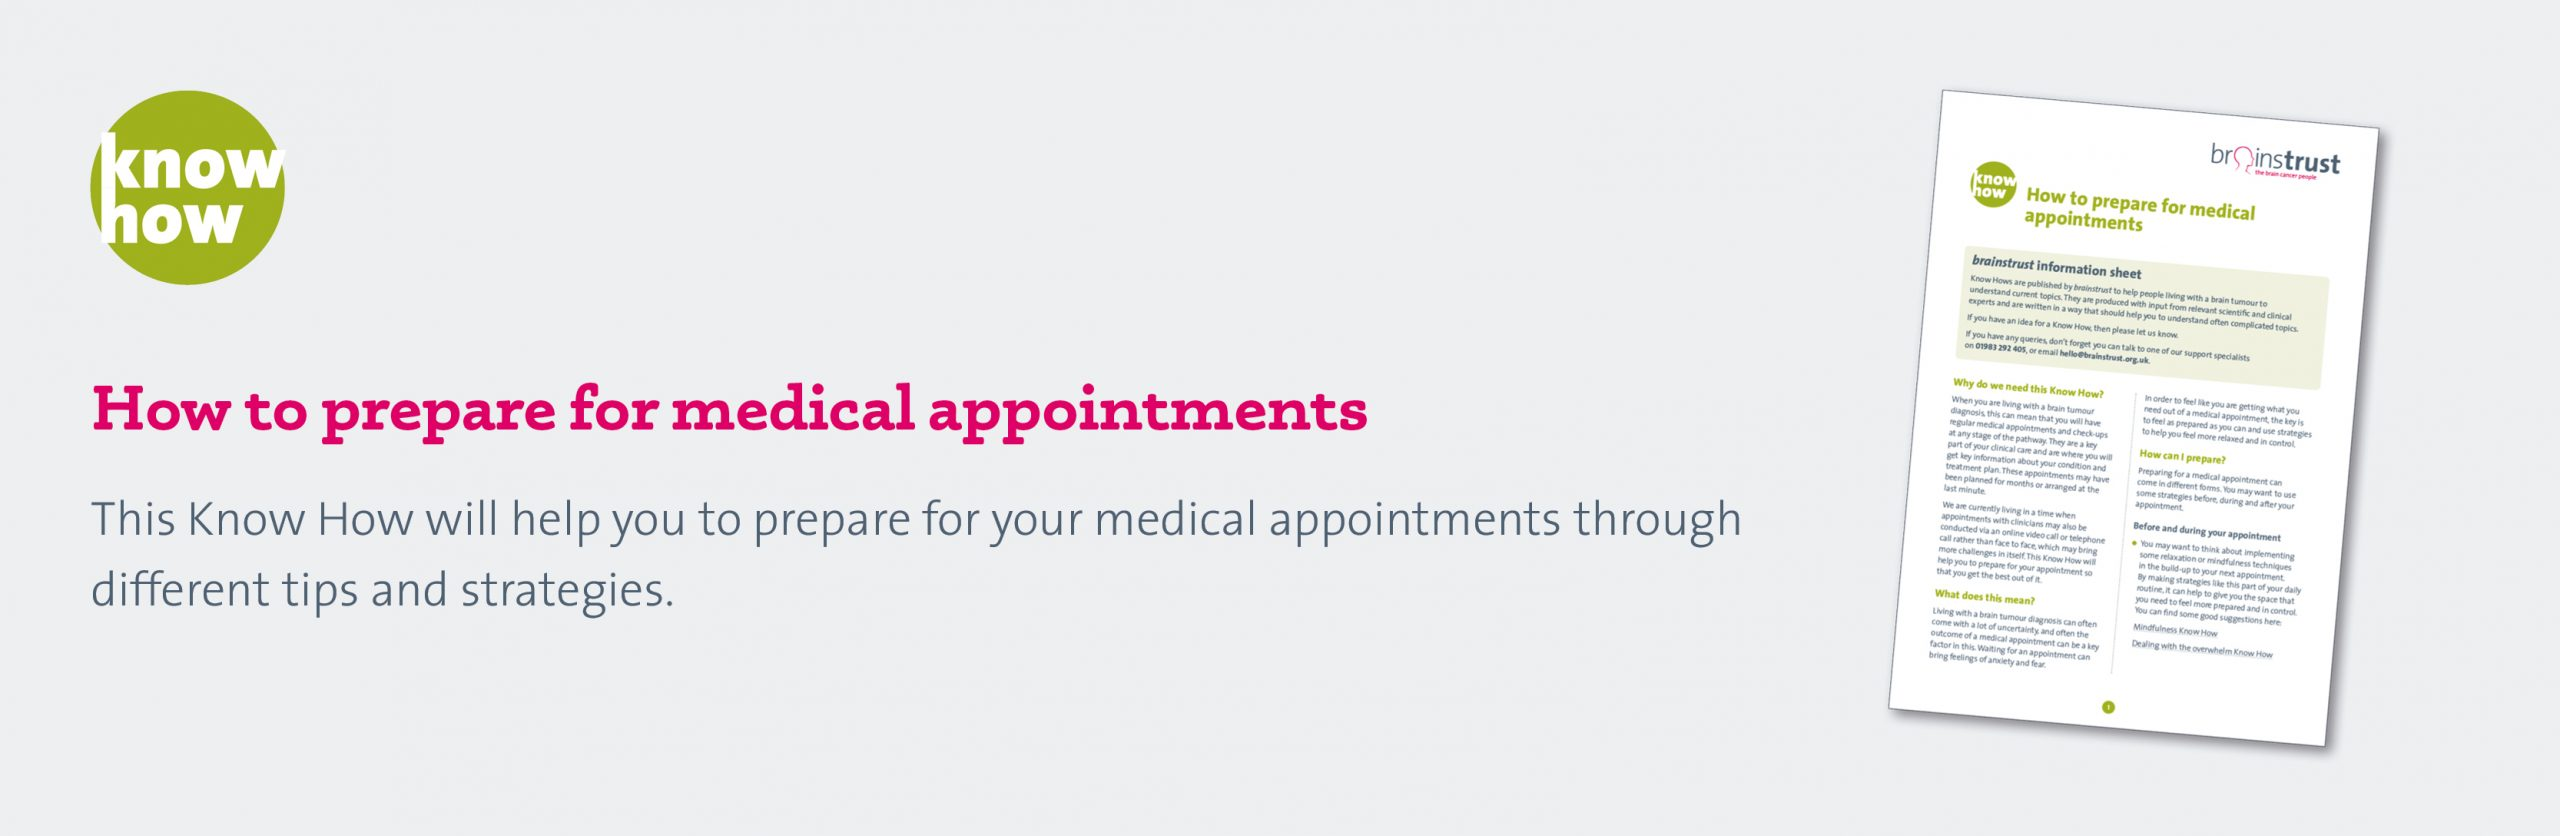 10 carousel medical appointments kn scaled